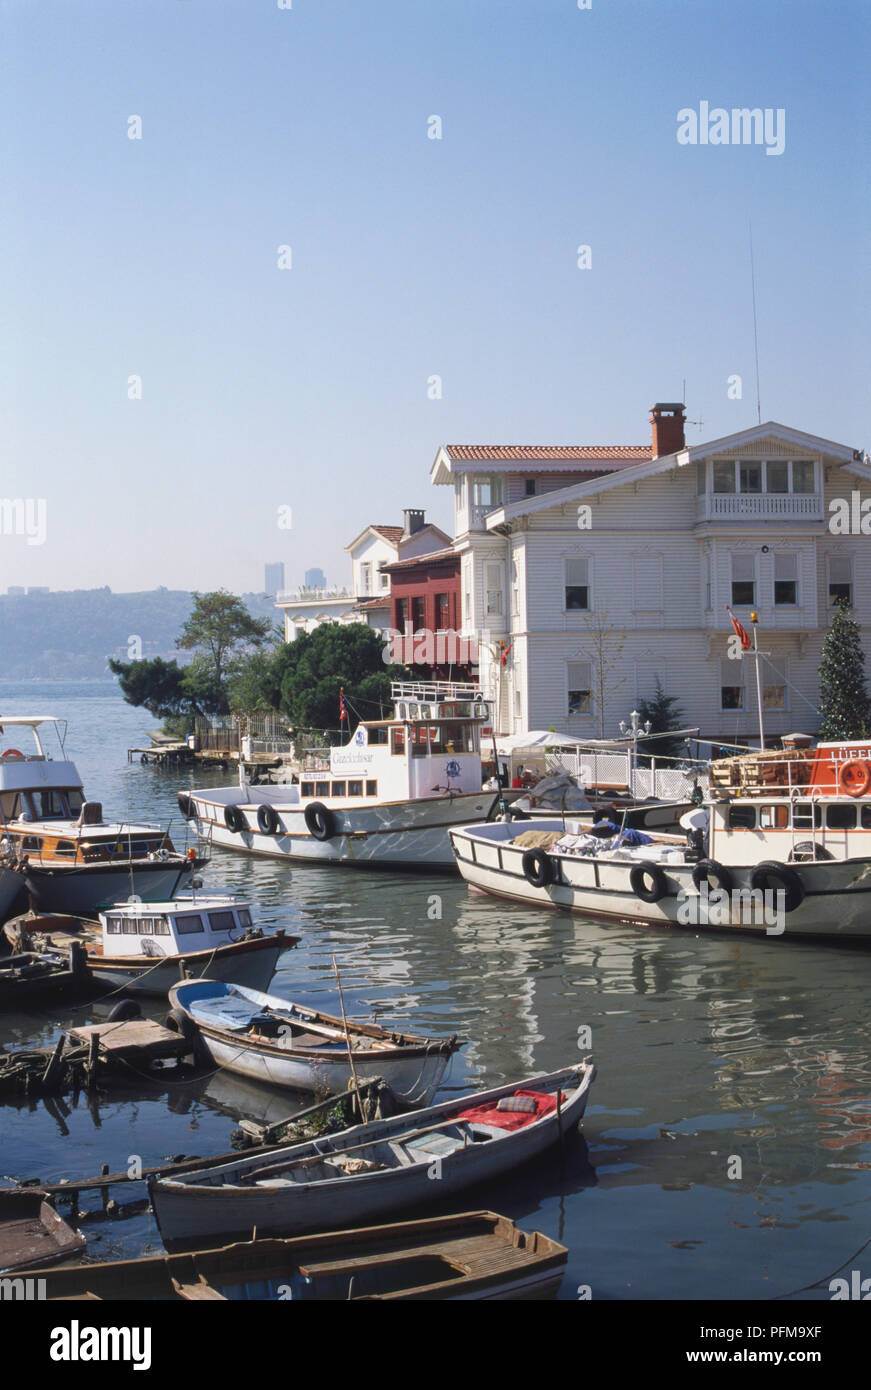 Asia, Turkey, Goksu River, various boats moored on the riverfront, cluster of buildings on waterfront, trees on edge, water and hilltop in background. - Stock Image